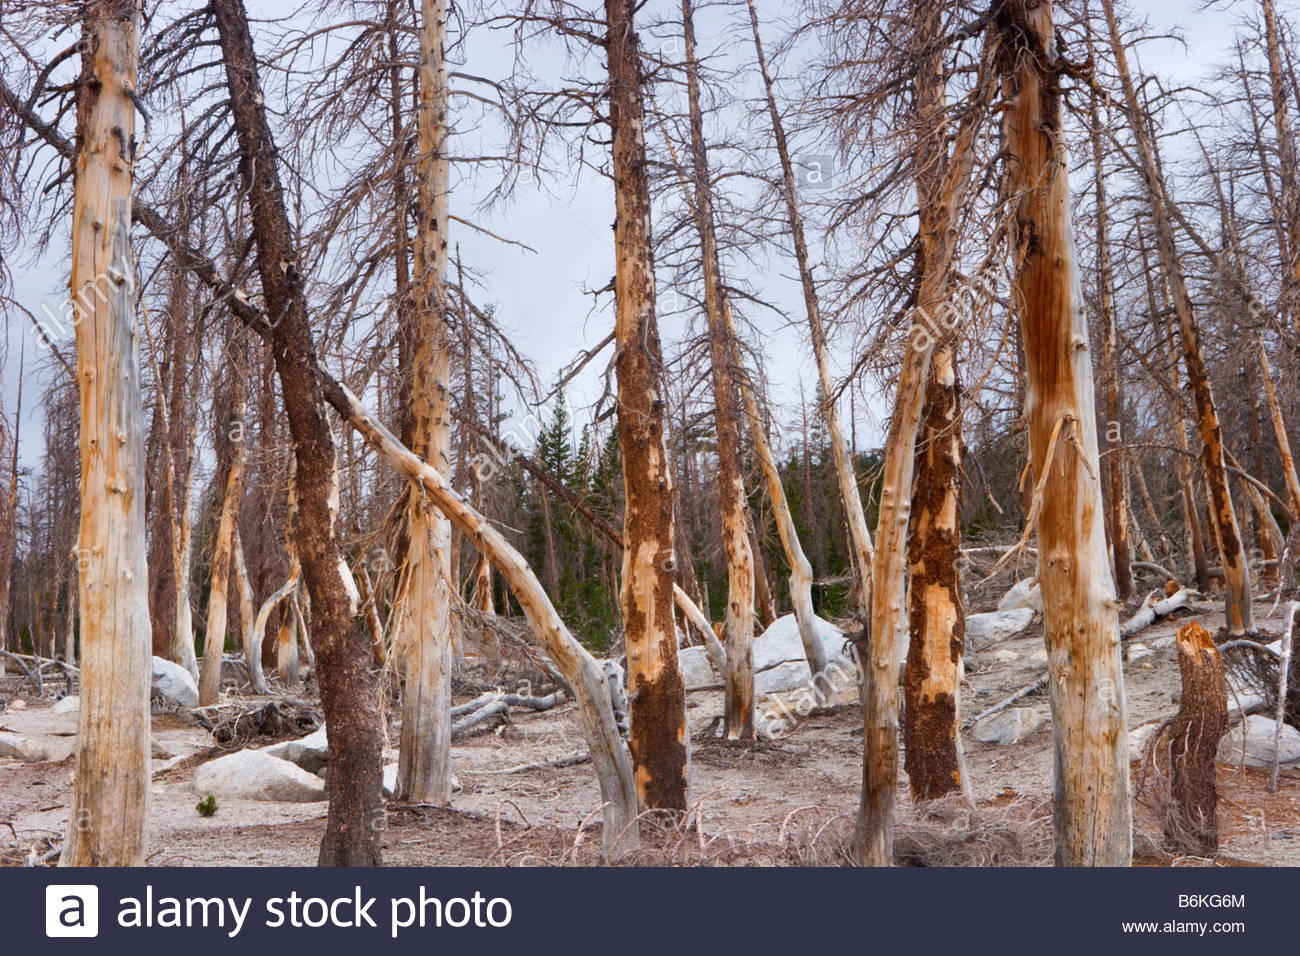 Dead Pine Trees Killed by Carbon Dioxide Emissions near Horseshoe Lake Ansel Adams Wilderness California - Stock Image